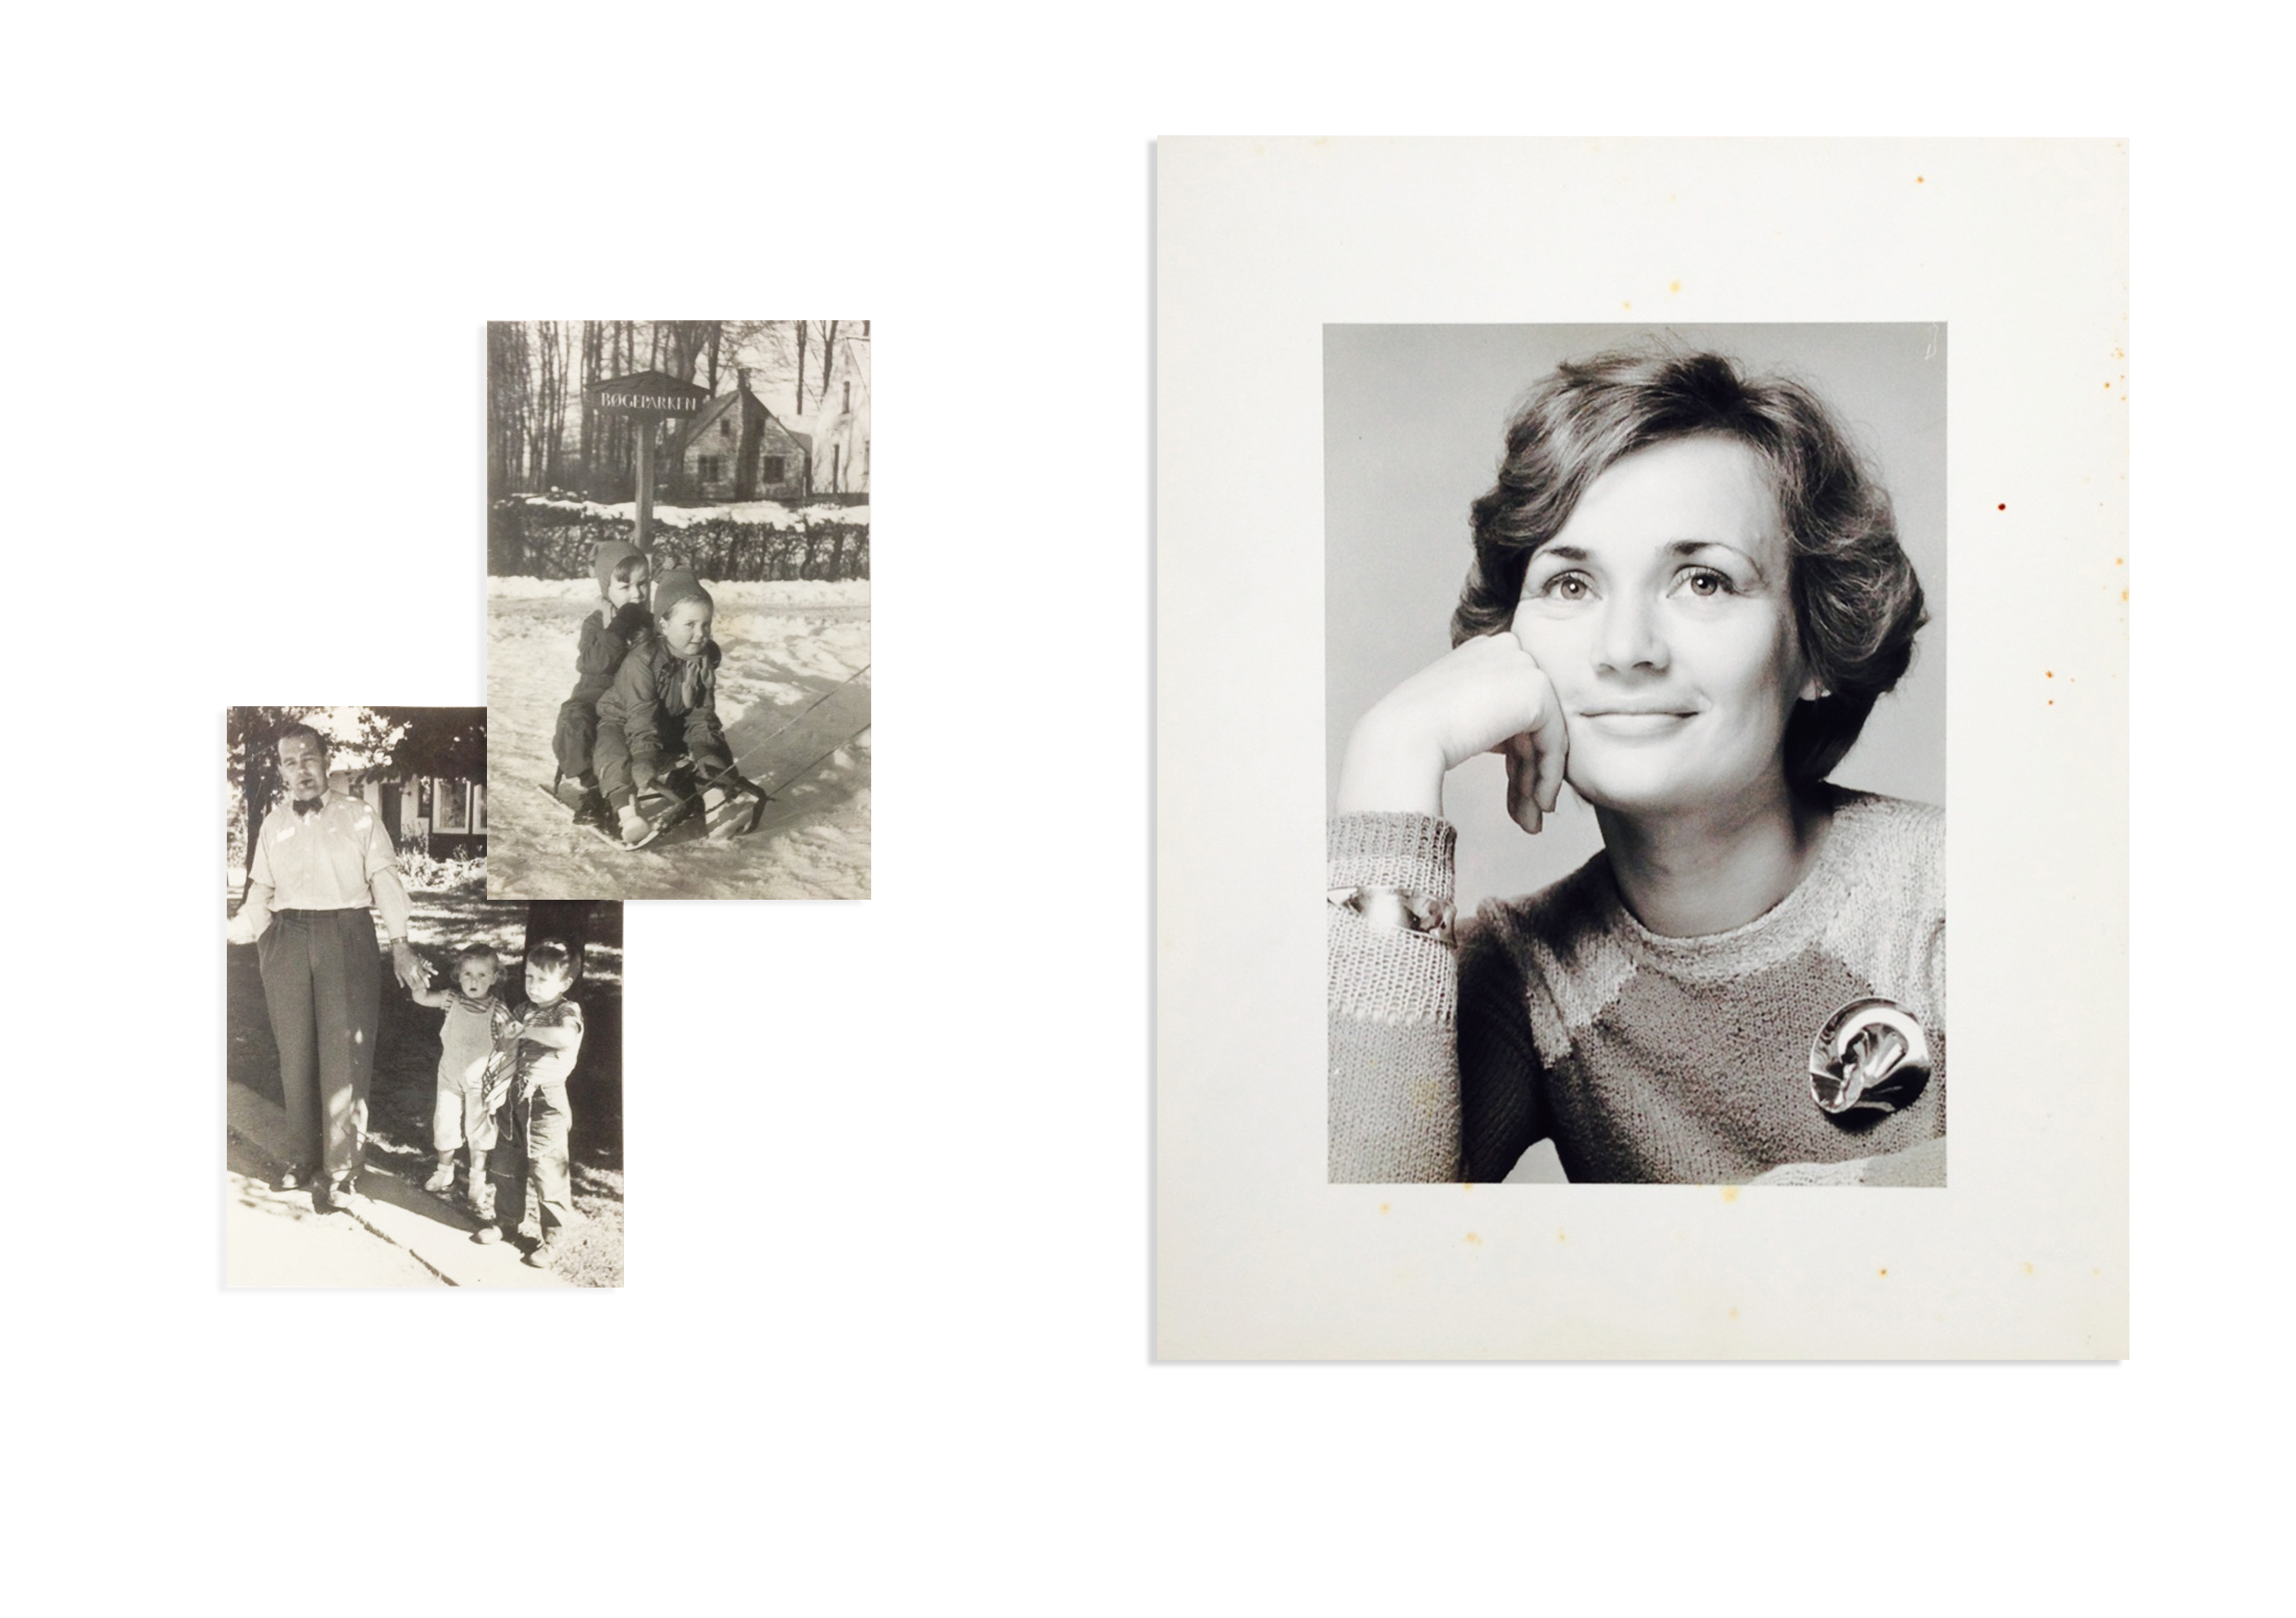 Scandinavian heritage.  Left: From the land of Hans Christian Anderson's fairytales,my idyllic childhood in Denmark, shown here together with my father and older brother Ole.   Right: Caught candidly, a portrait from my early career with Georg Jensen (Danish Silversmiths) in Sydney.